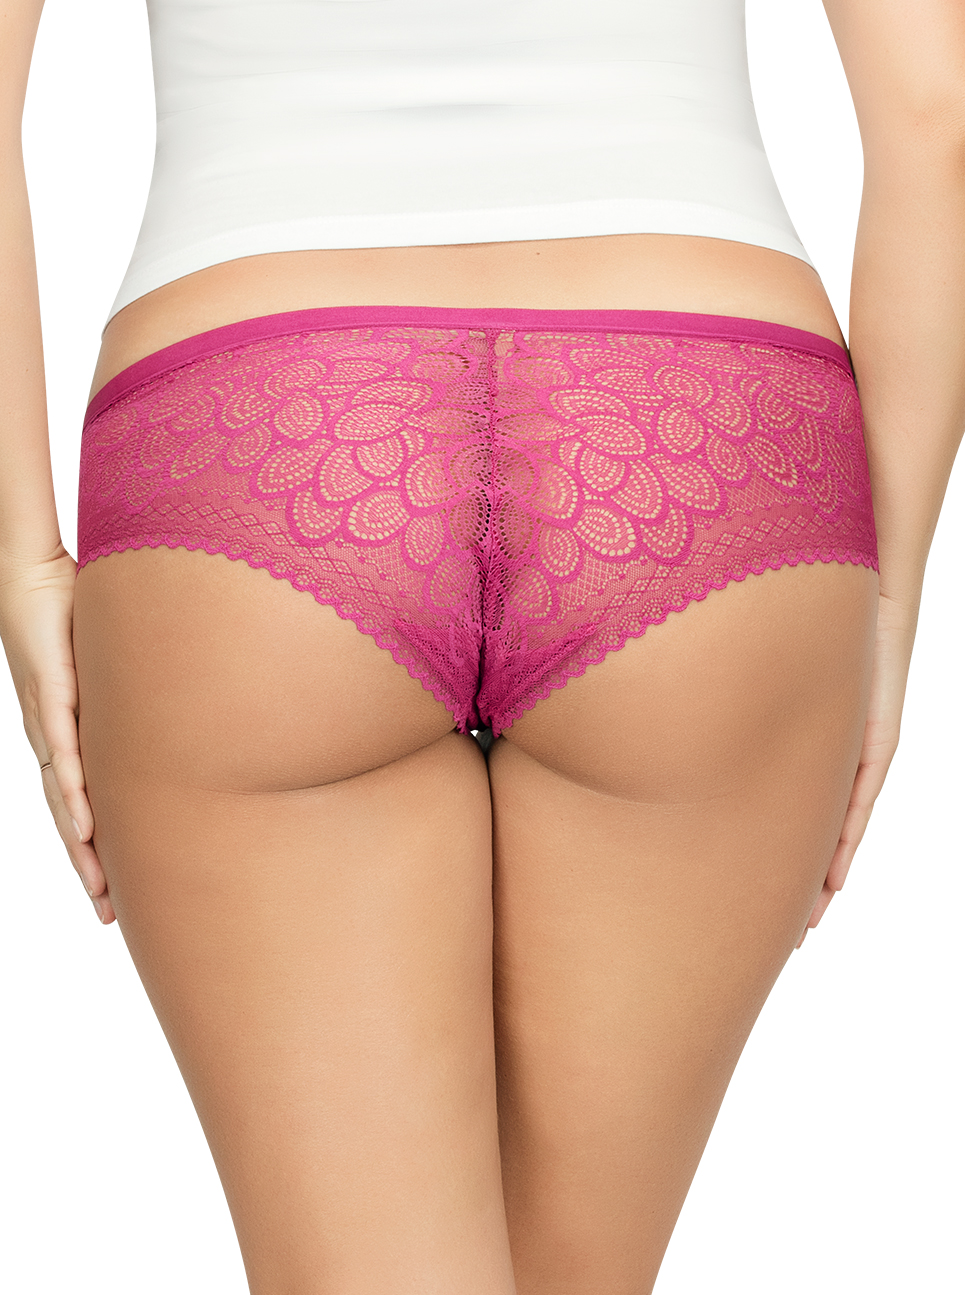 PARFAIT ParfaitPanty SoGlam HipsterPP502 Raspberry Back - Parfait Panty So Glam Hipster - Raspberry - PP502